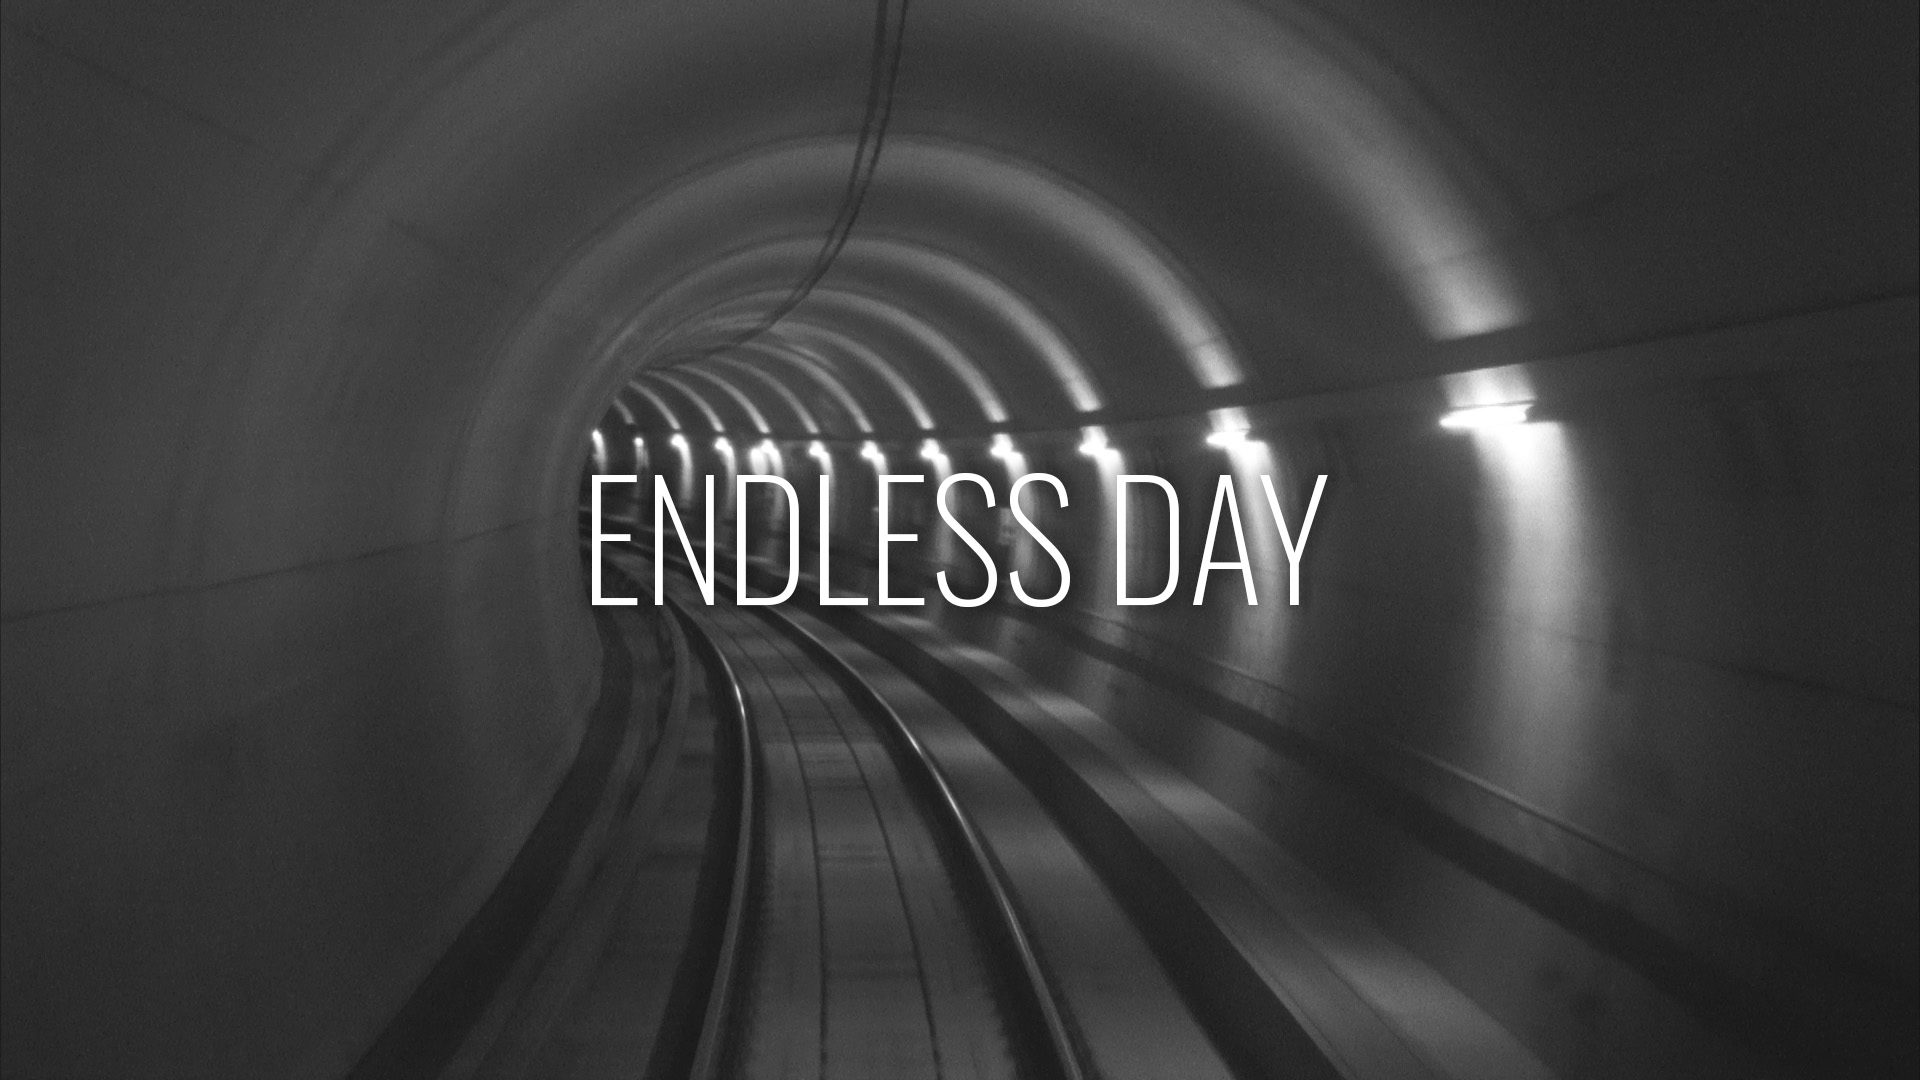 Avatar_Endless-Day